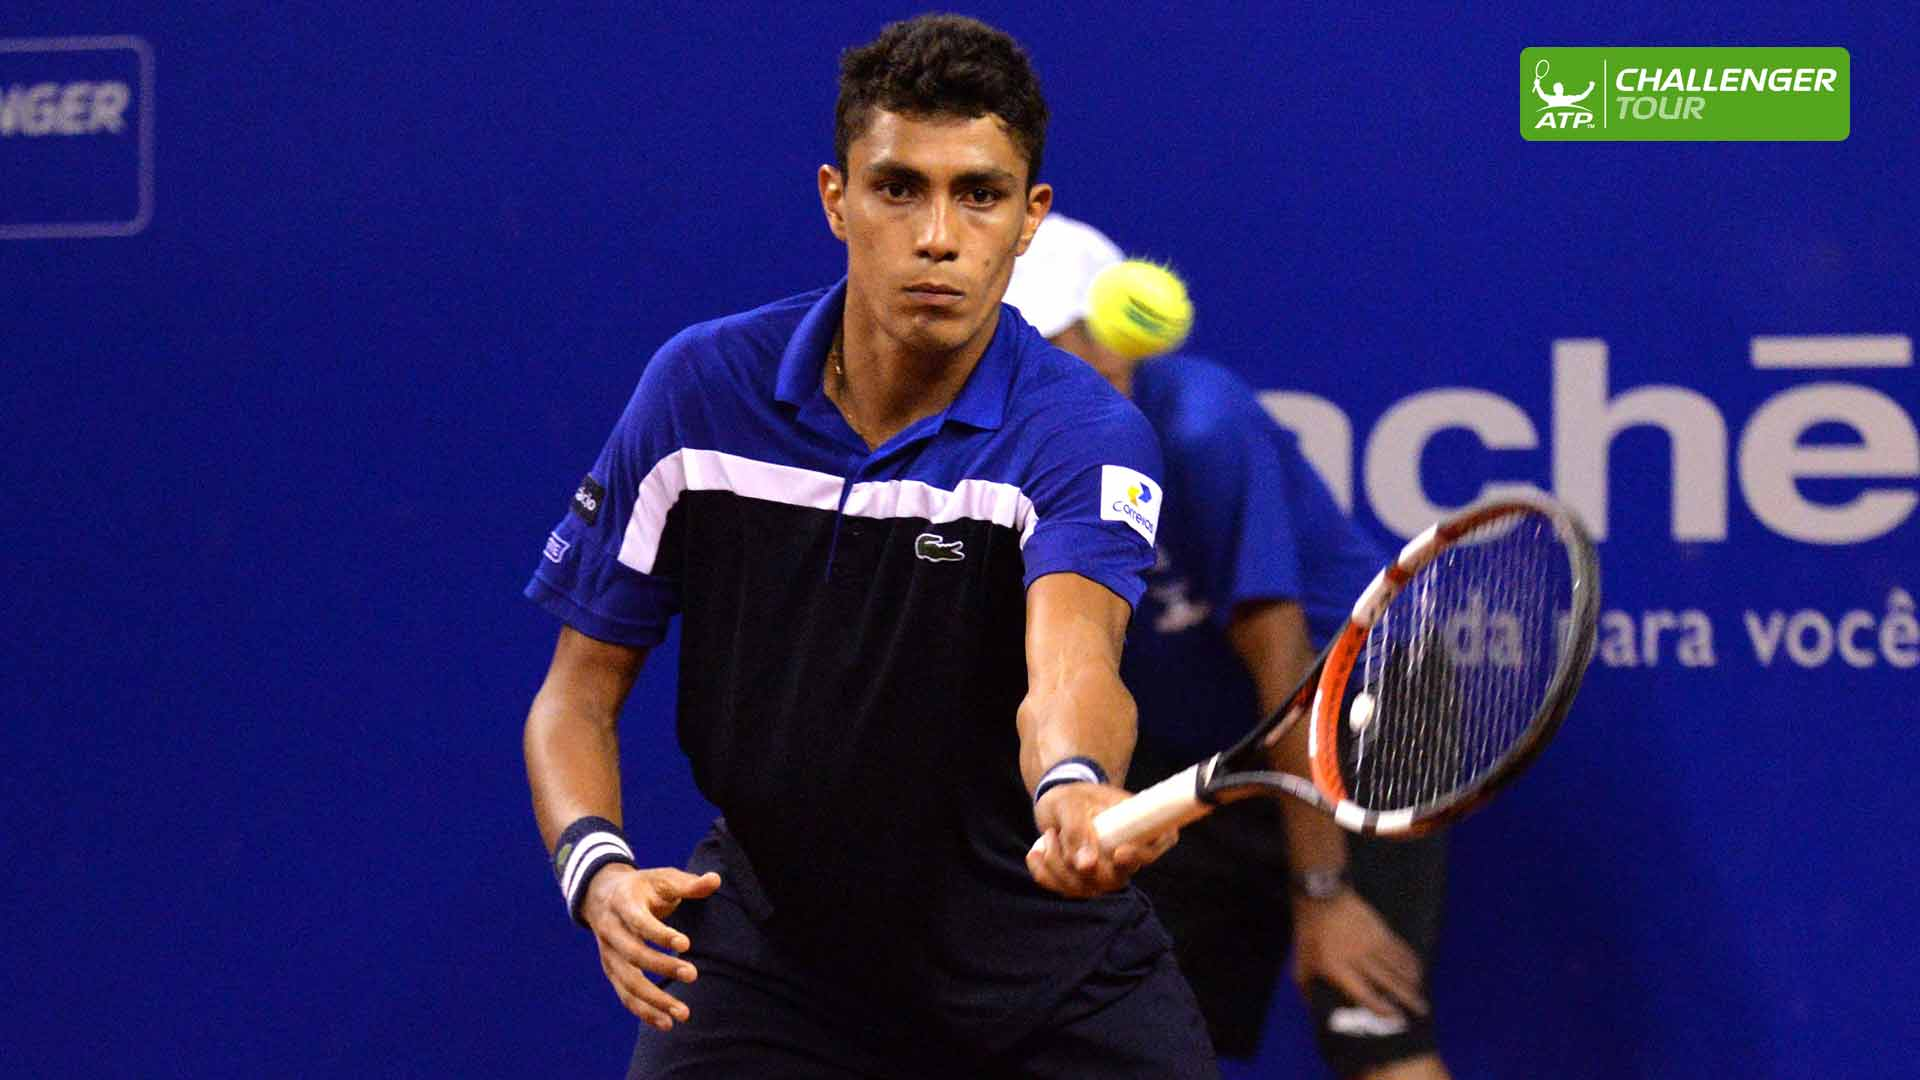 Thiago Monteiro looks for a Challenger title on home soil in Campinas.